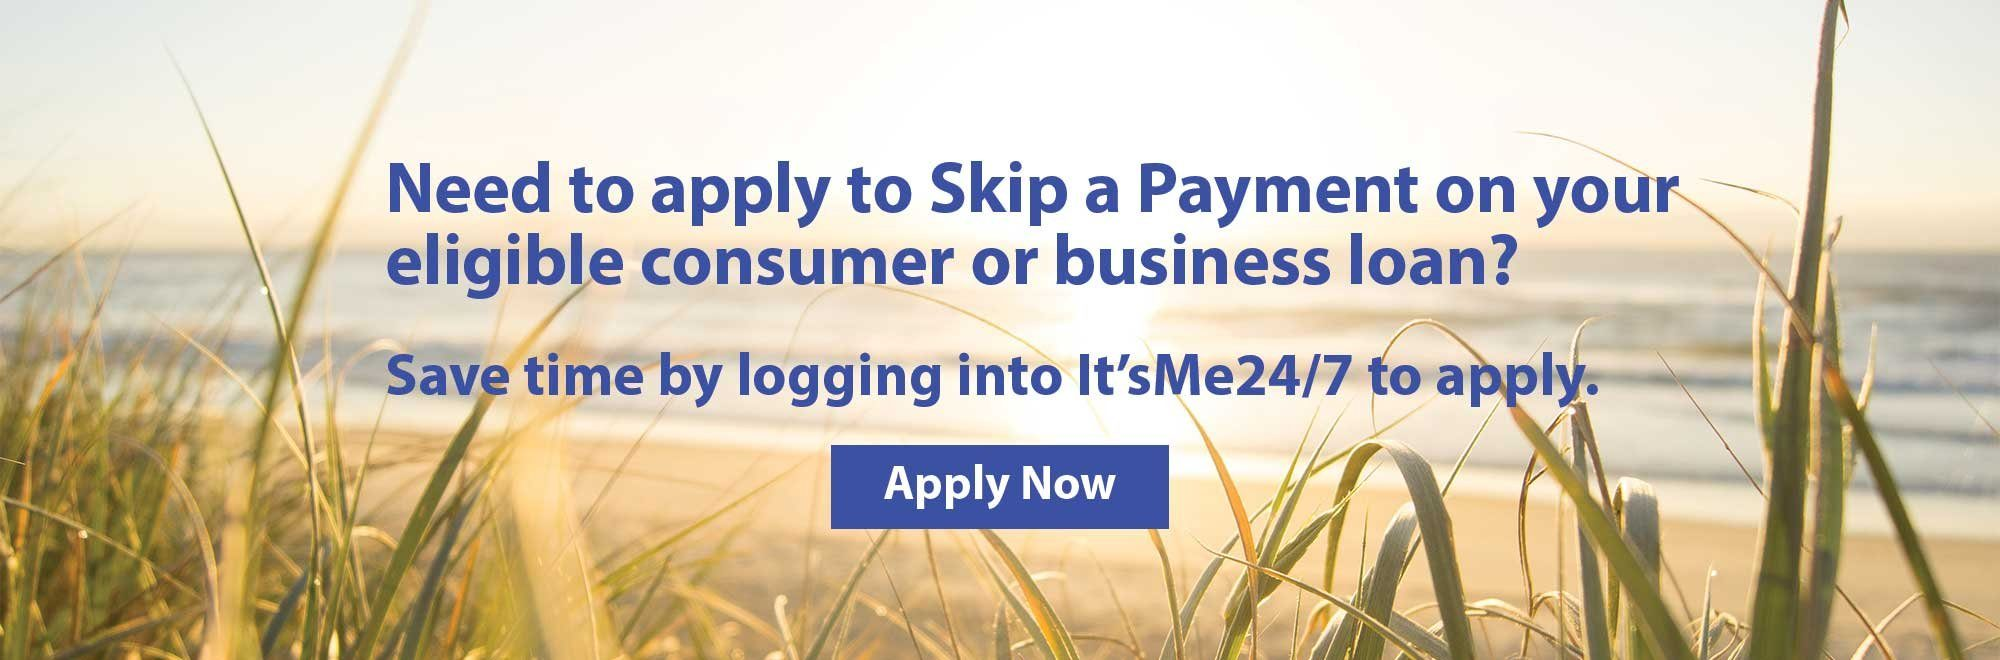 Need to apply to Skip a Payment on your eligible consumer or business loan? Save time by logging into It'sMe24/7 to apply.